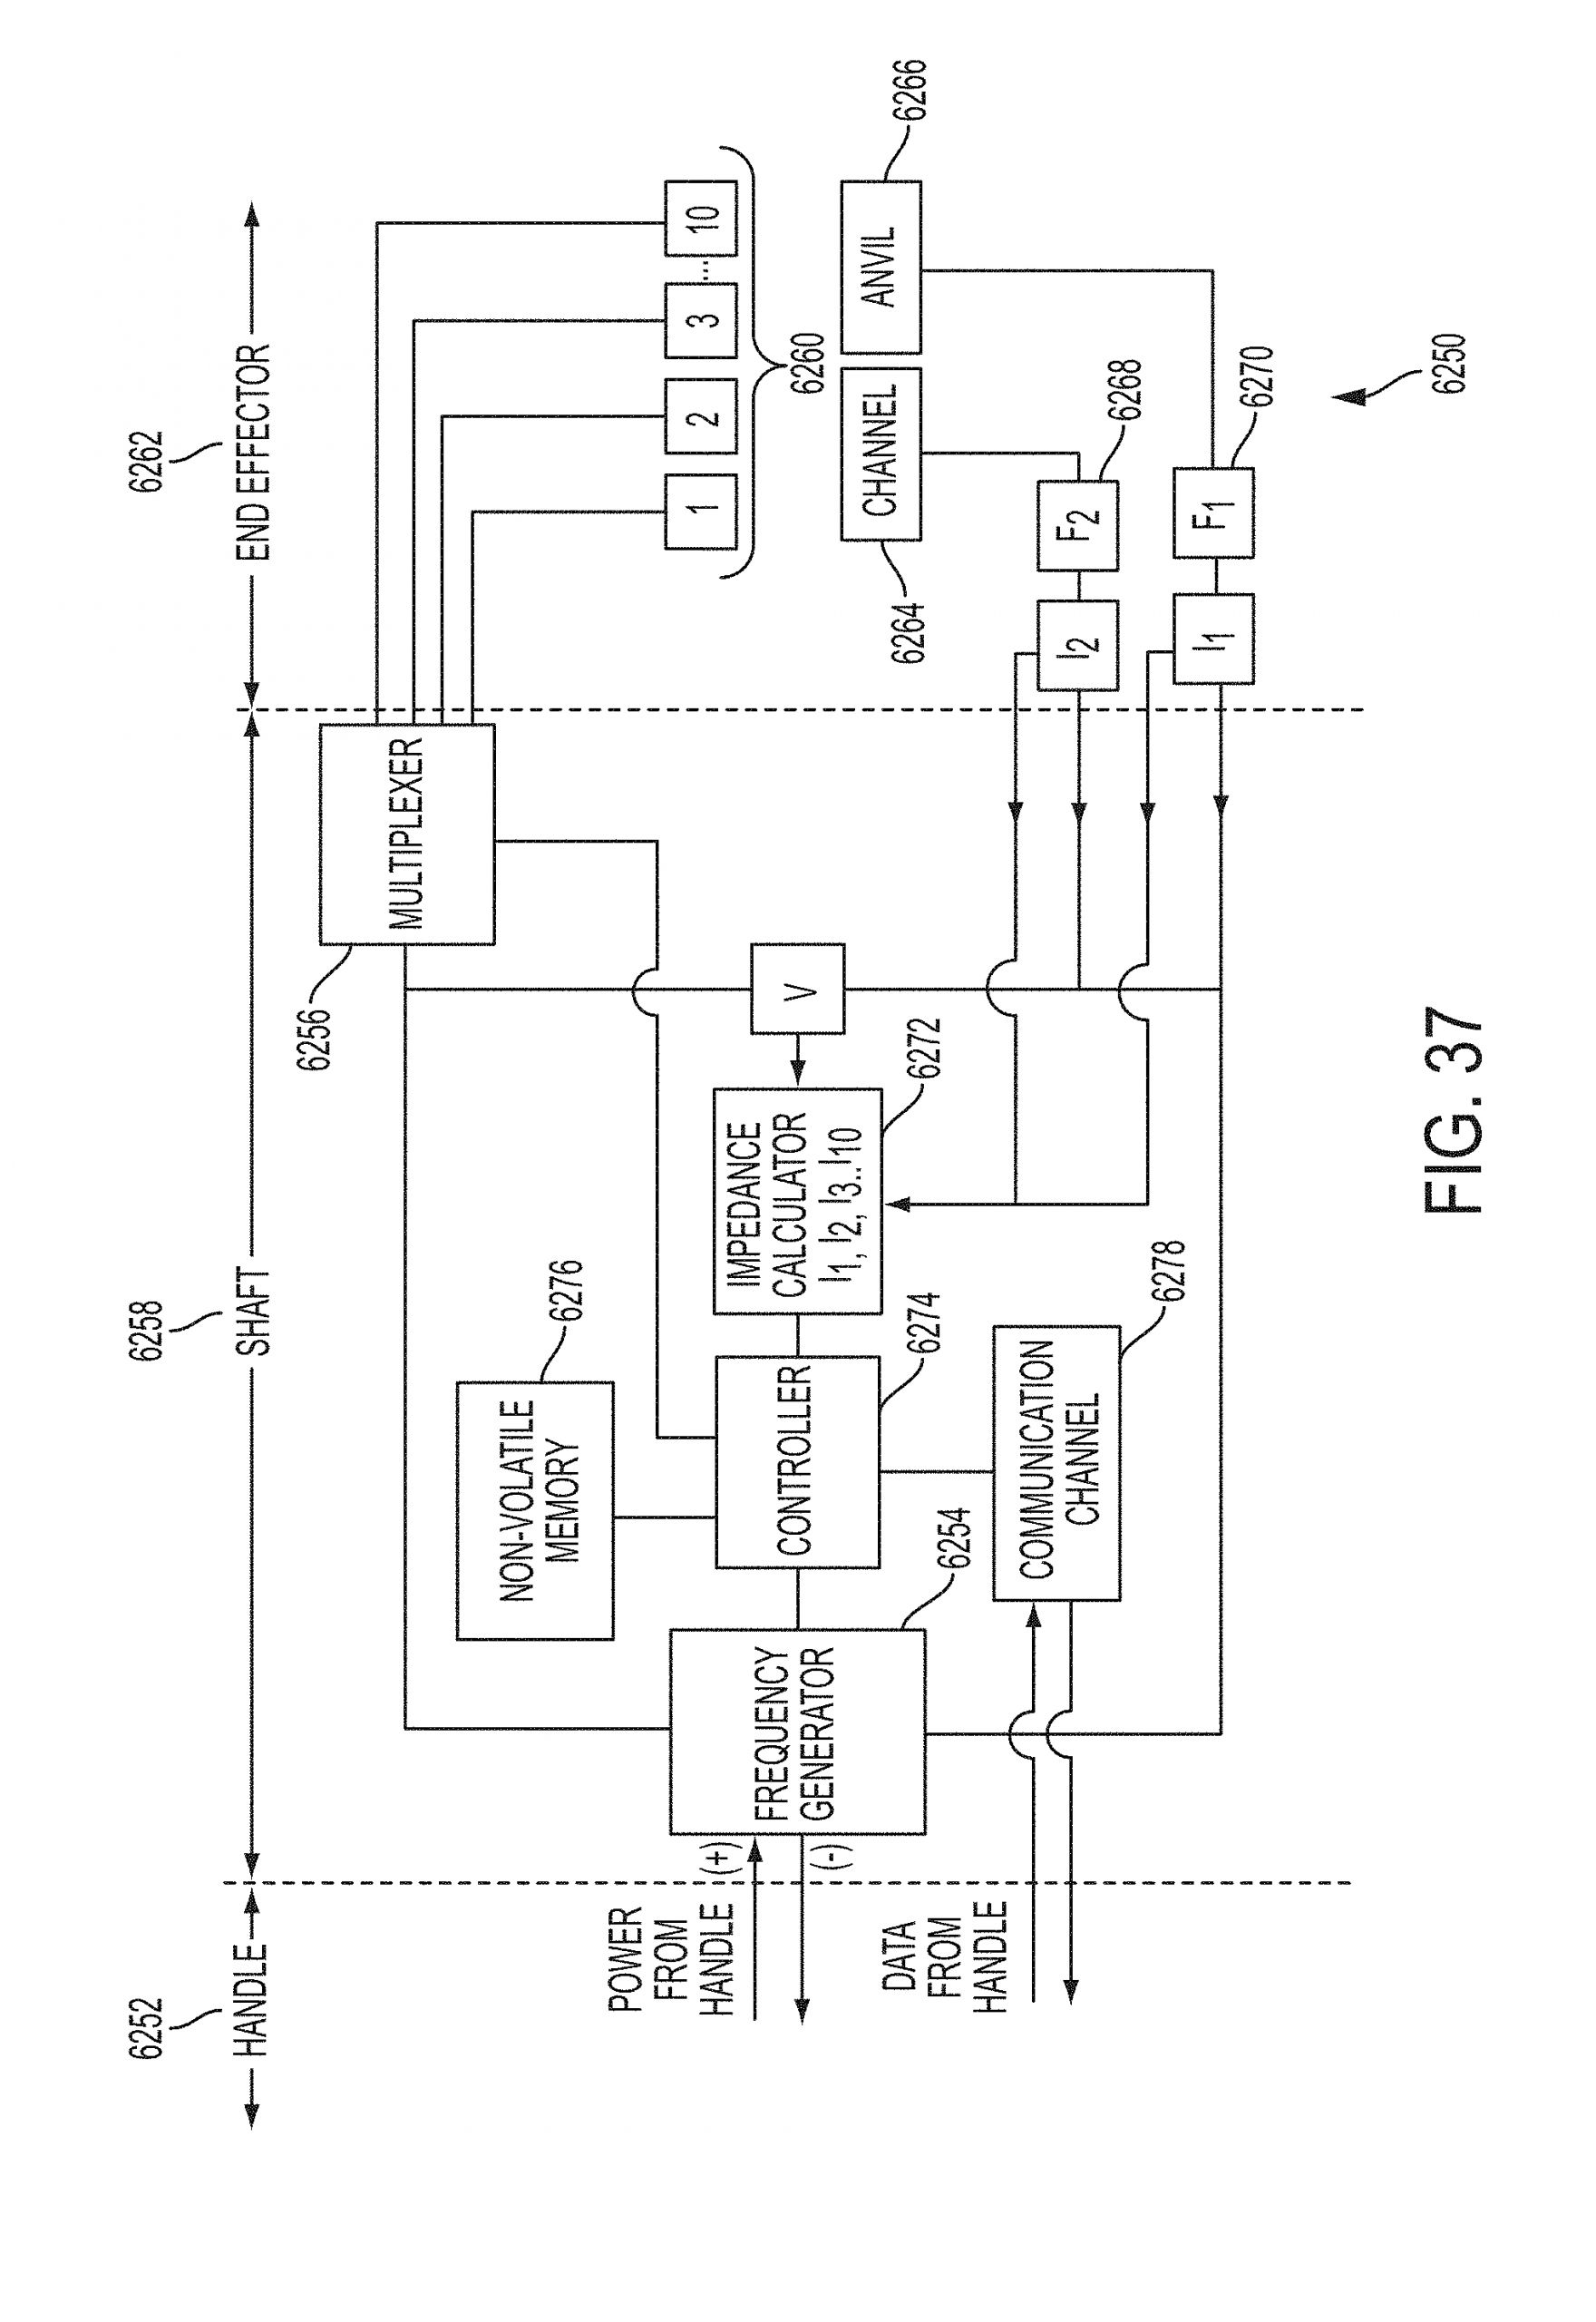 Powerco Fuel Pump Wiring Diagram Us20170296178a1 Surgical Instrument with Detection Sensors